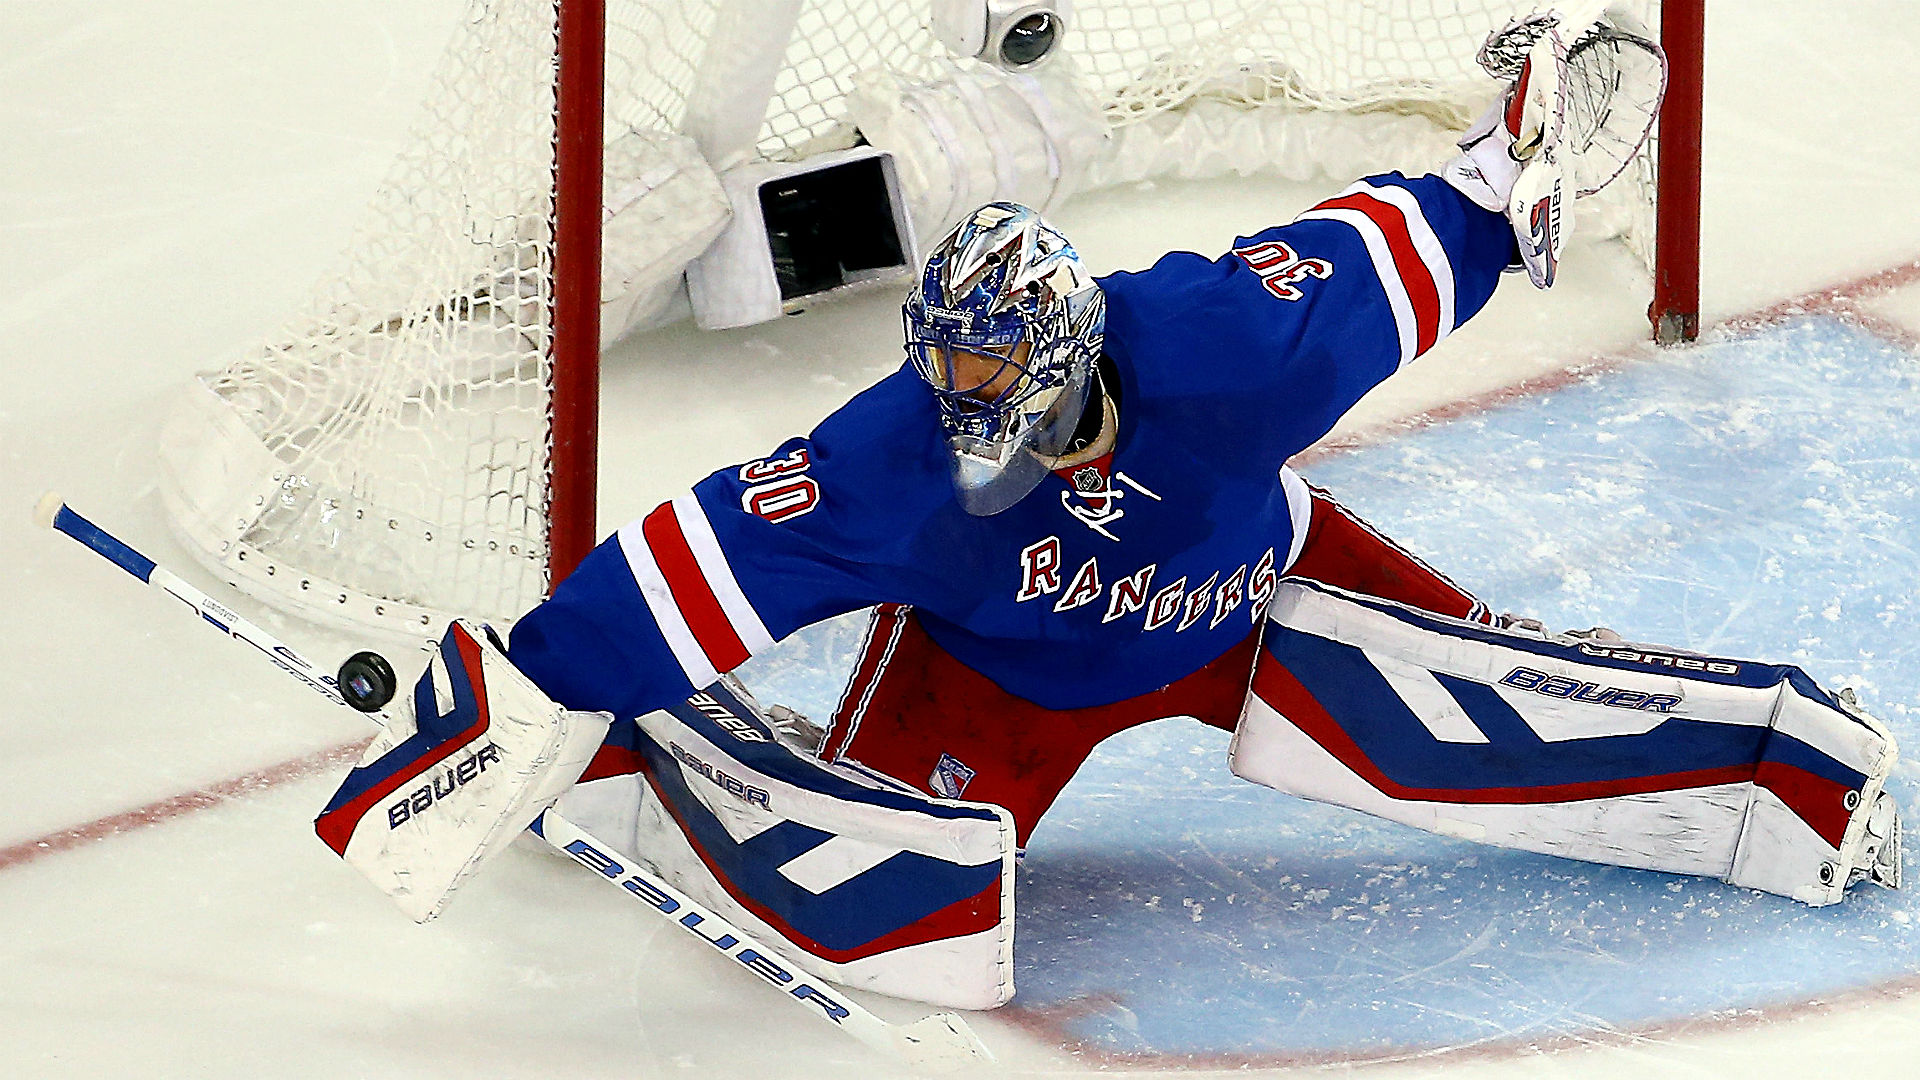 Rangers vs. Lightning Game 6 odds and betting analysis – New York faces elimination